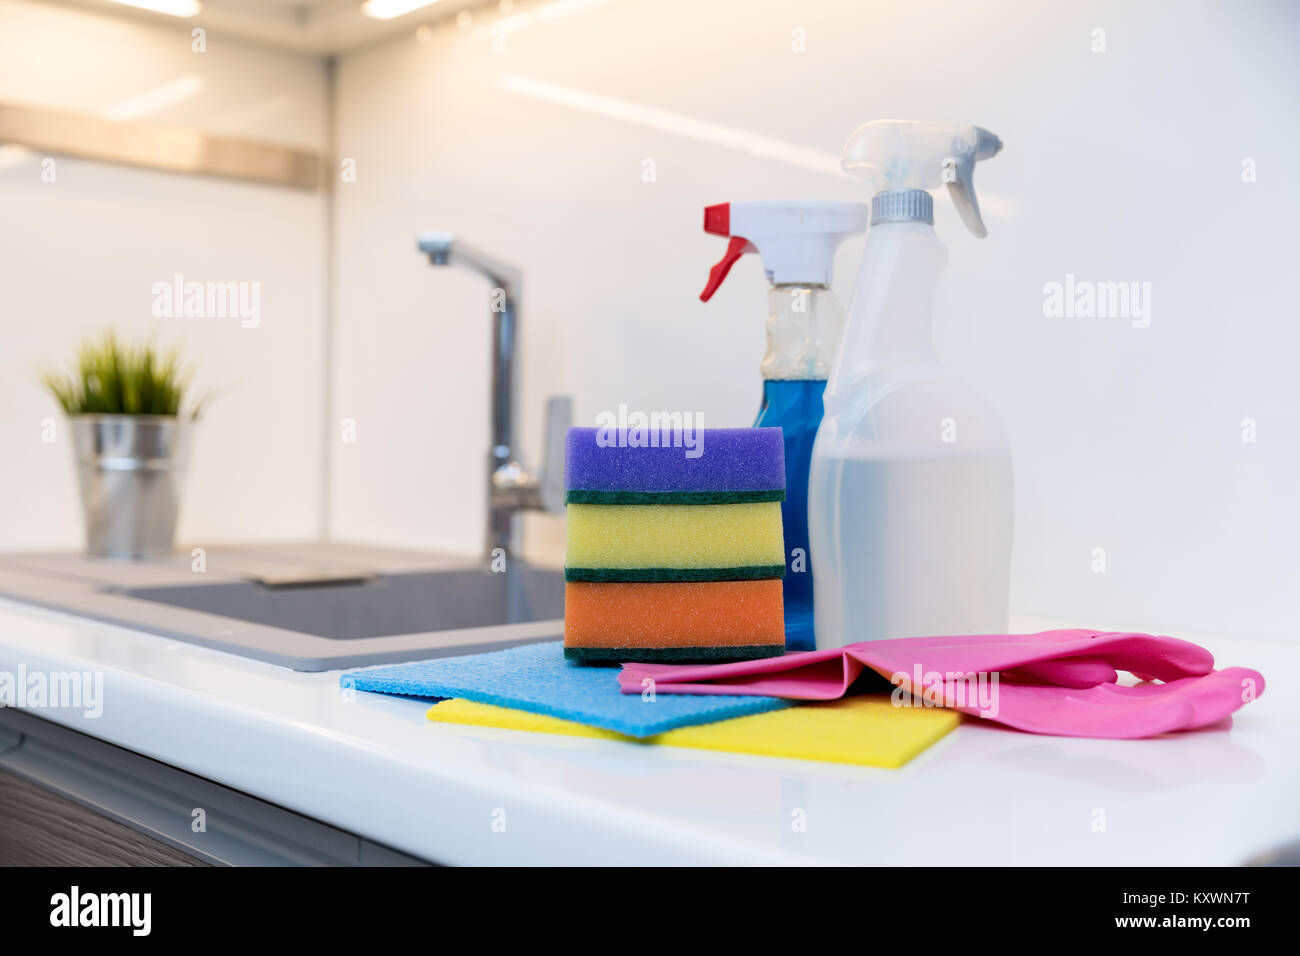 group of cleaning items on home kitchen worktop - Stock Image